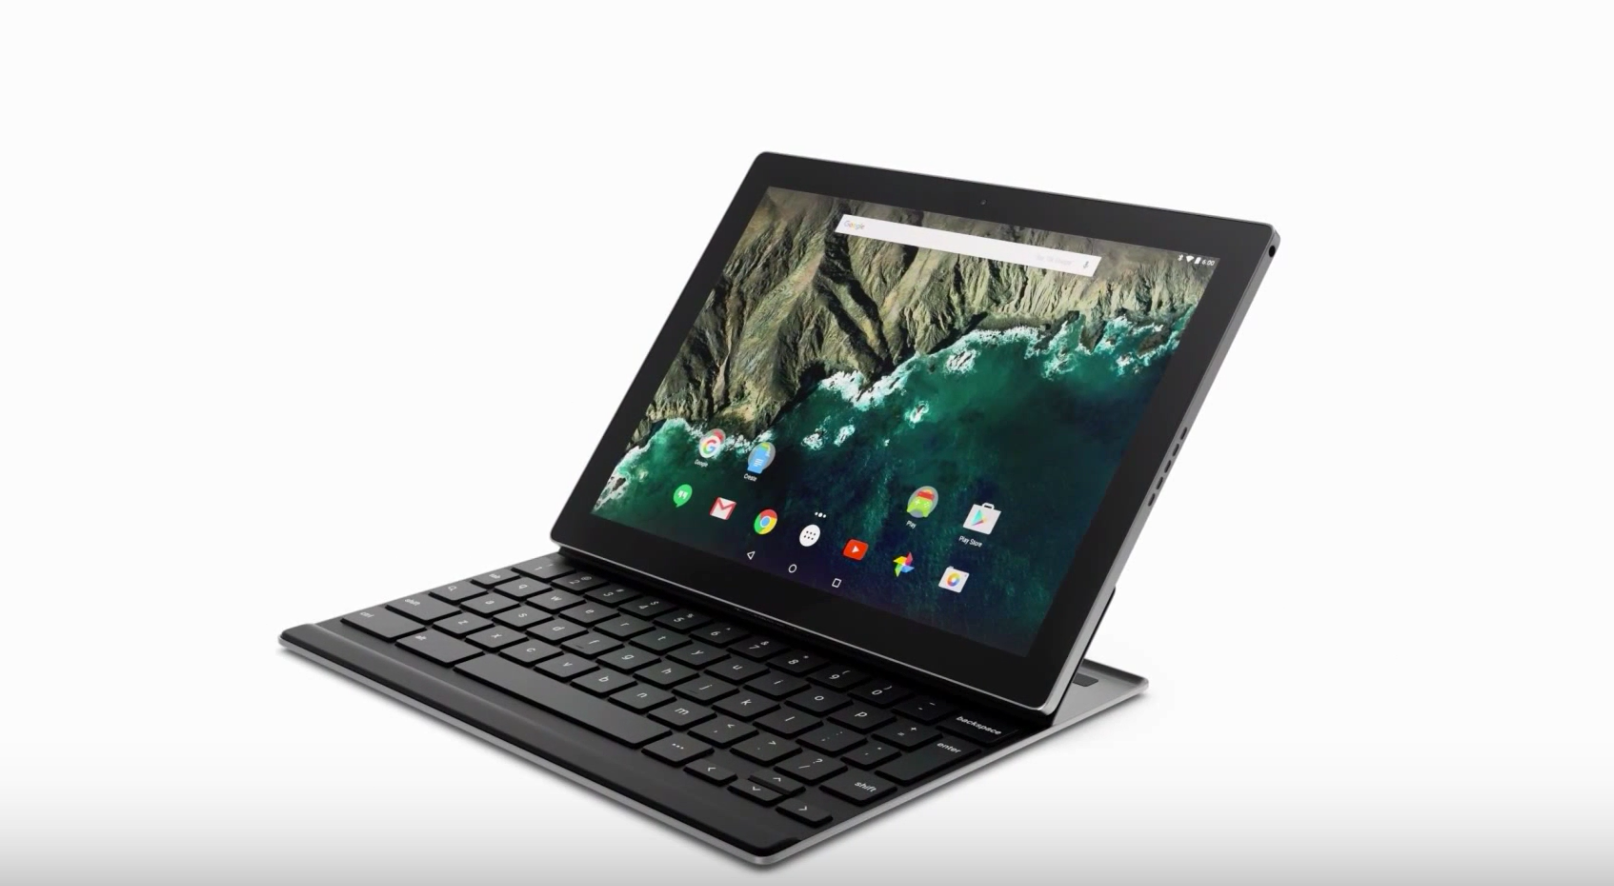 Pixel_c_android_tablet.png